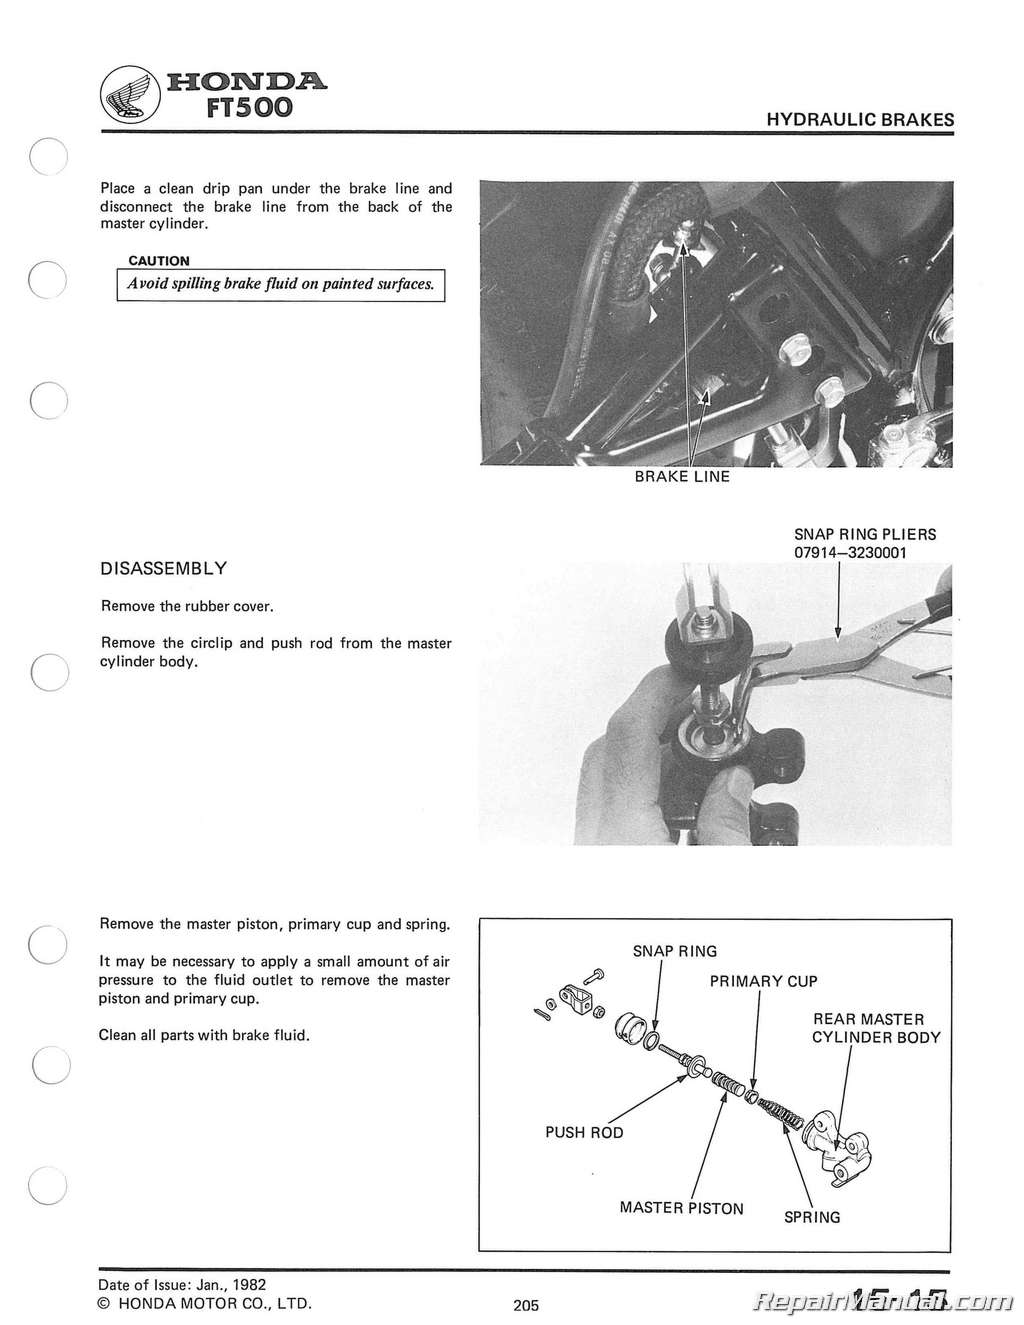 hight resolution of 1982 1983 honda ft500 ascot service manual